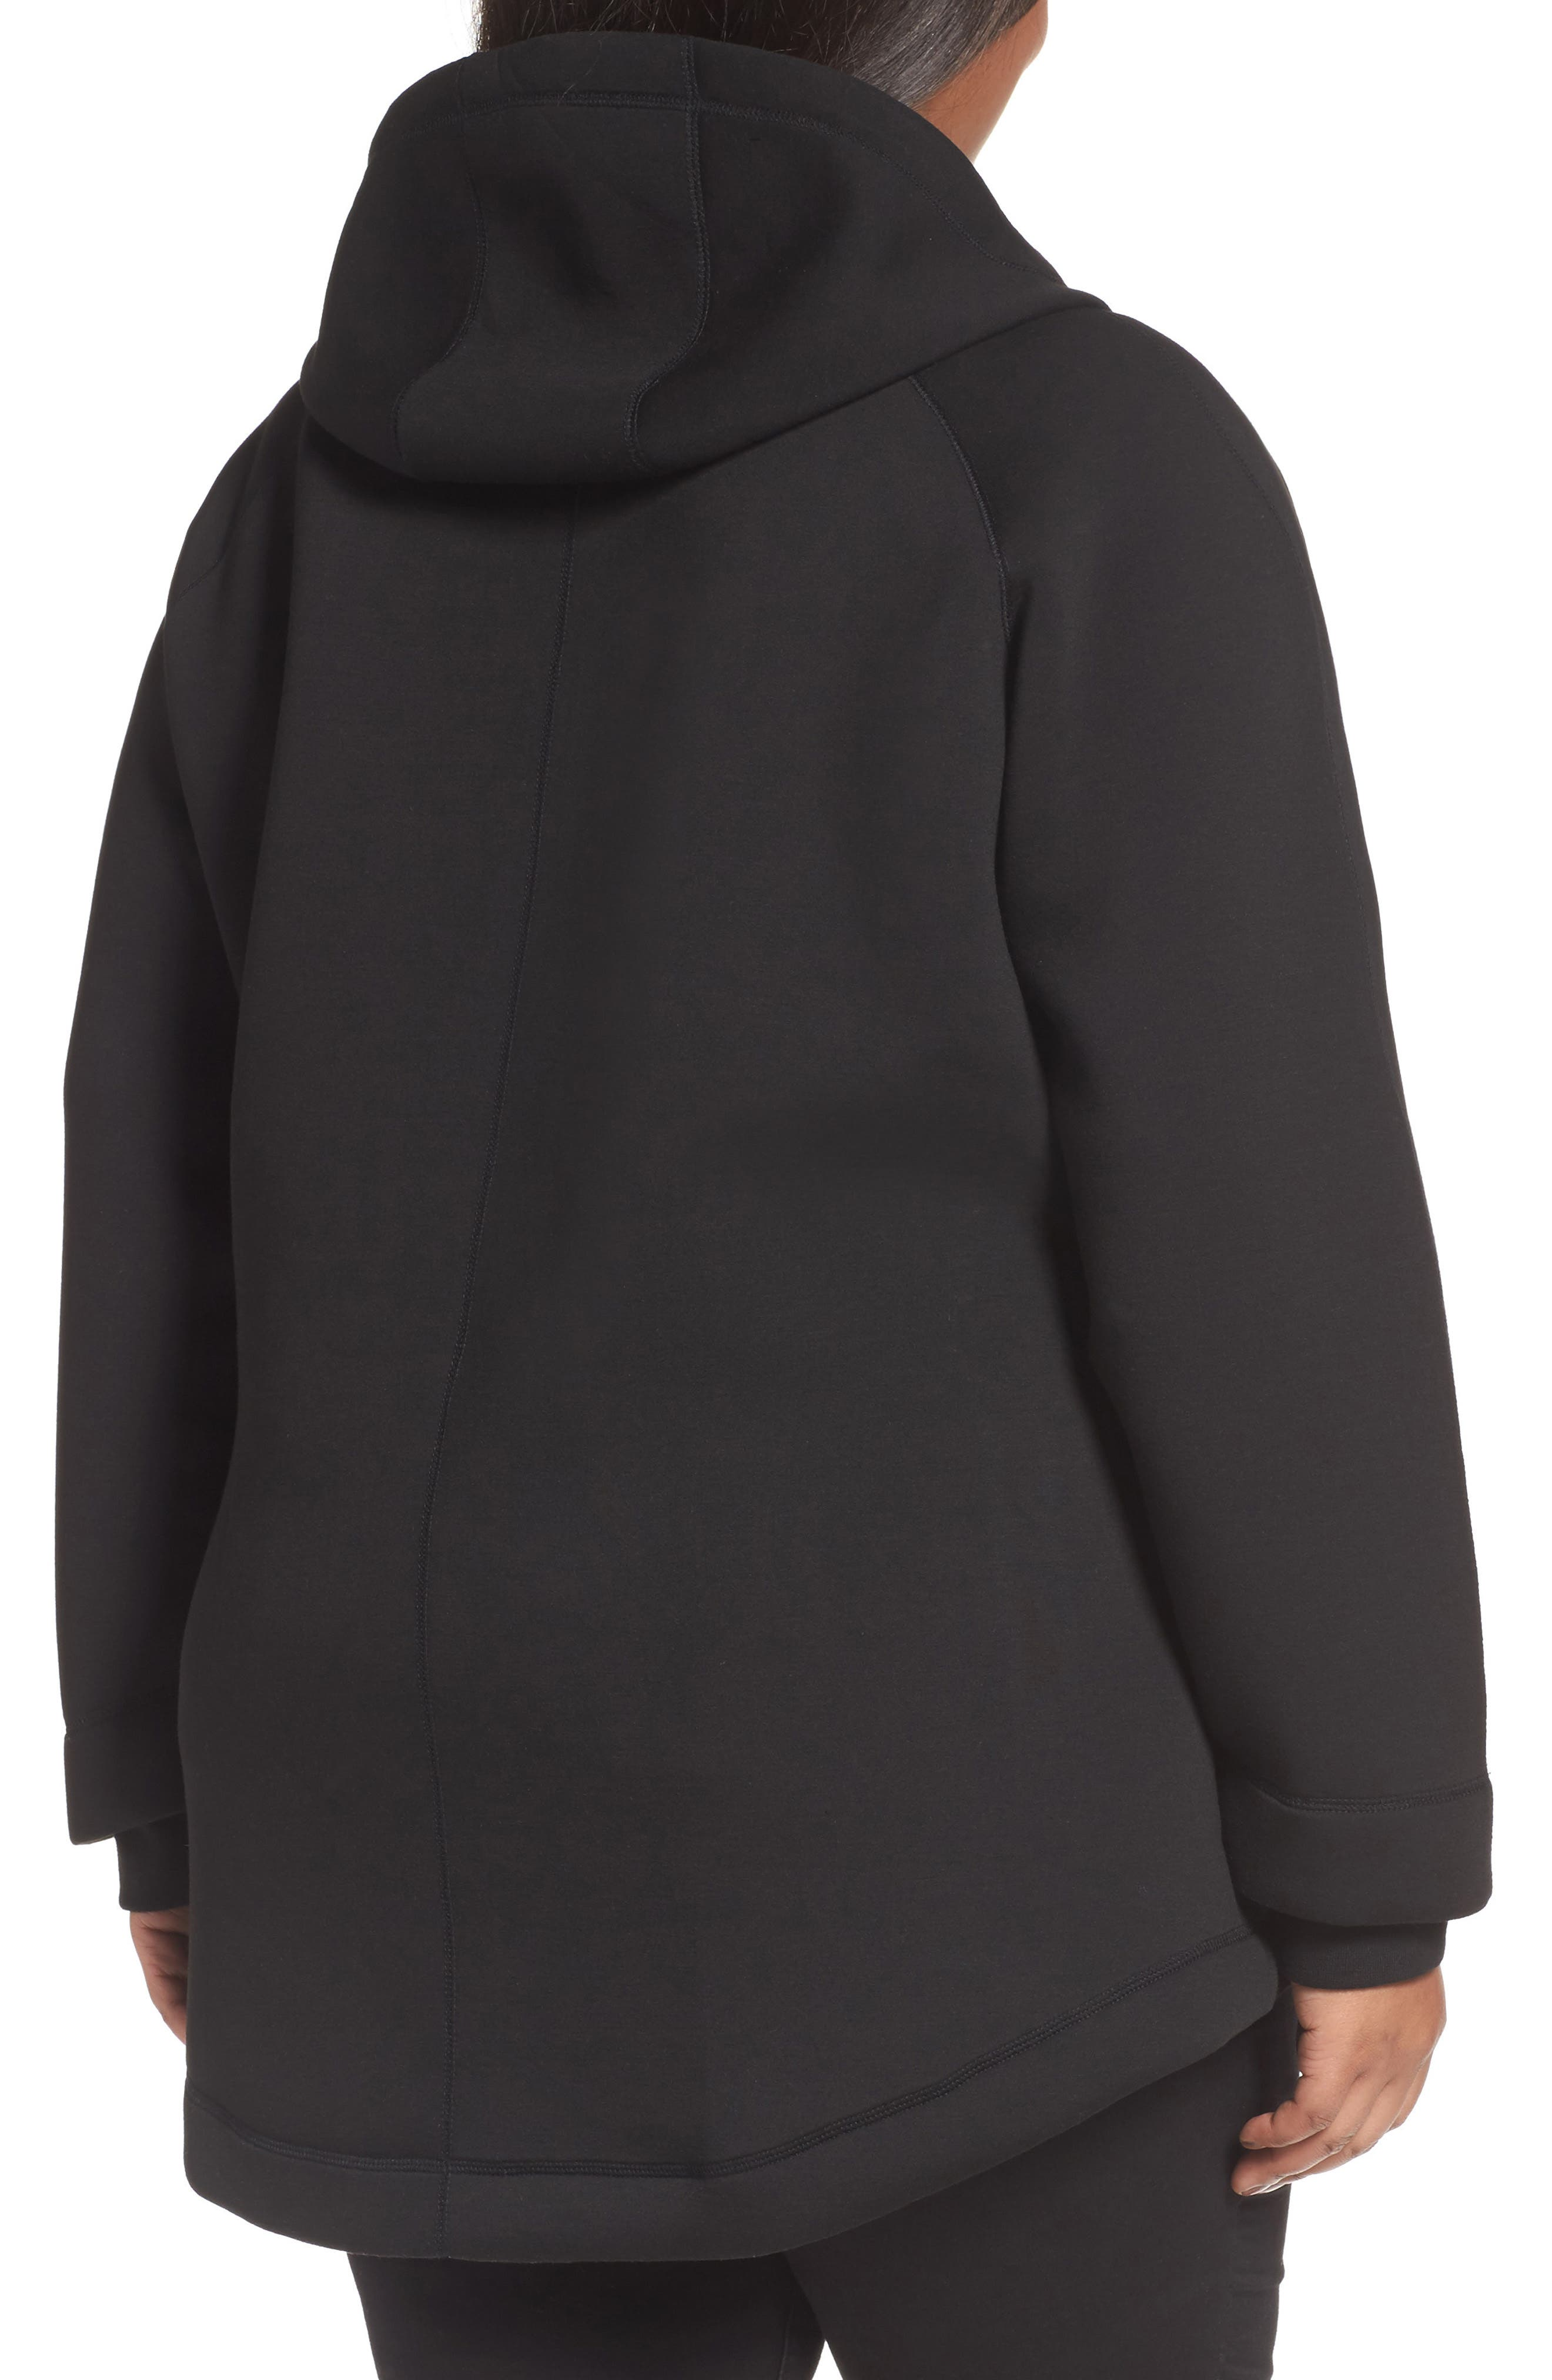 Mono Knit Drawstring Hooded Jacket,                             Alternate thumbnail 2, color,                             Black/ Burgundy